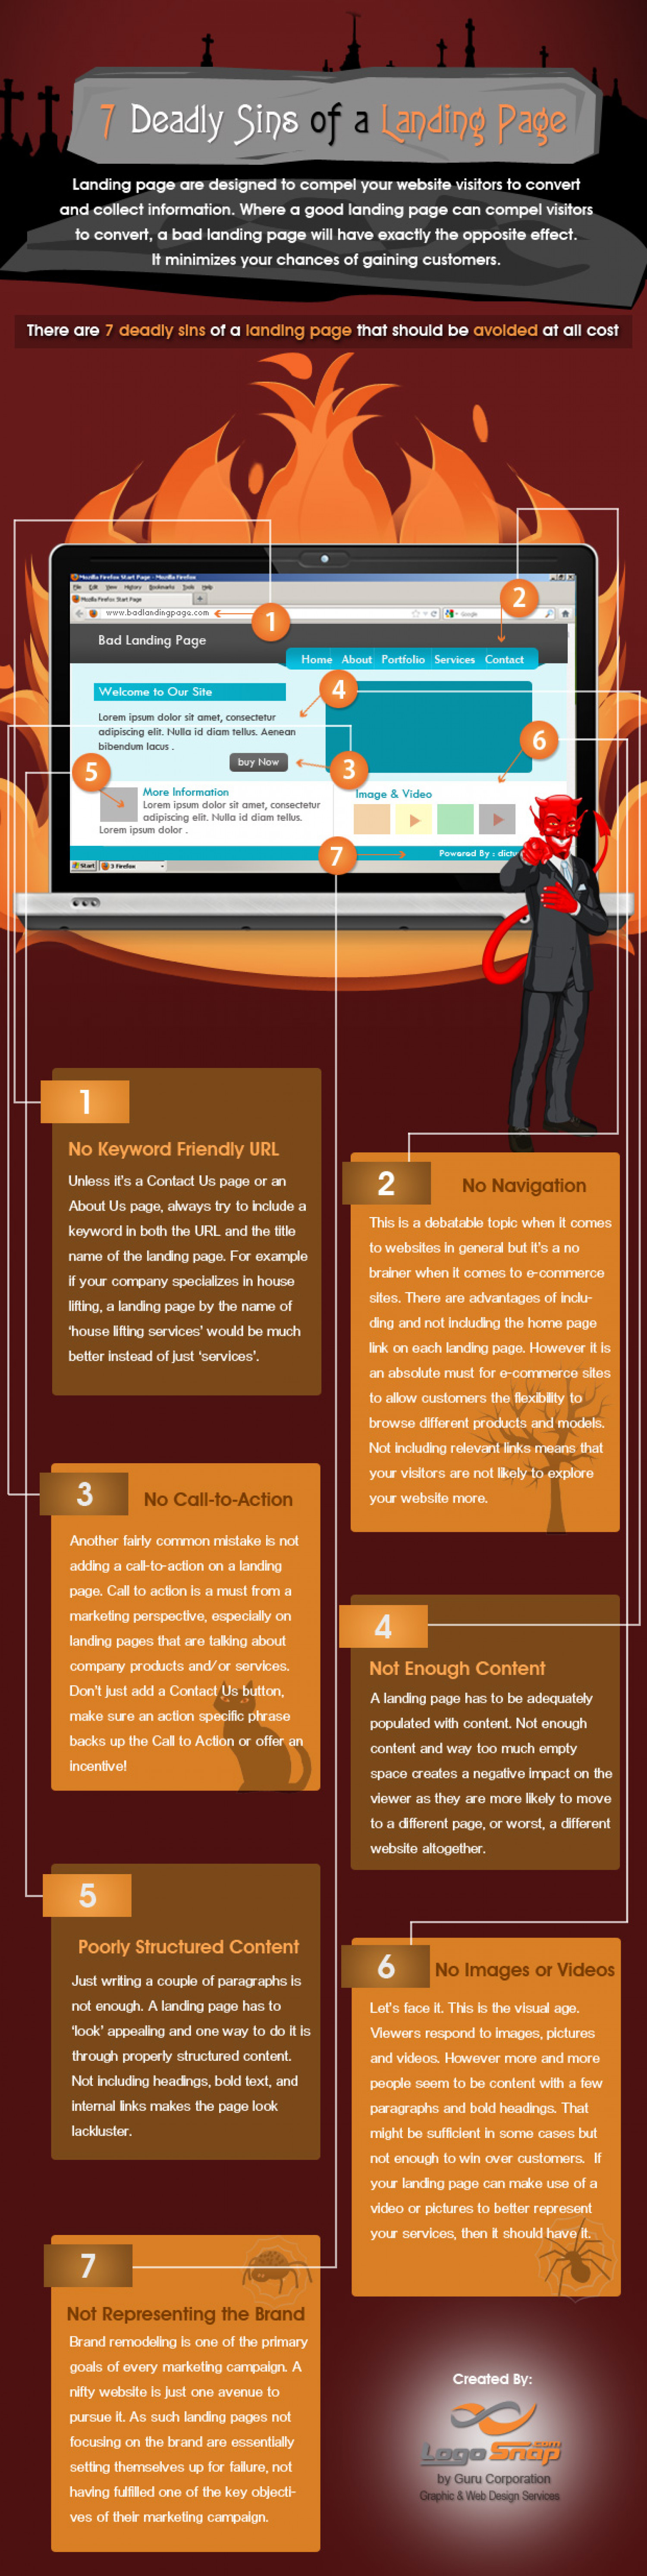 7 Highways to the Landing Page Hell Infographic